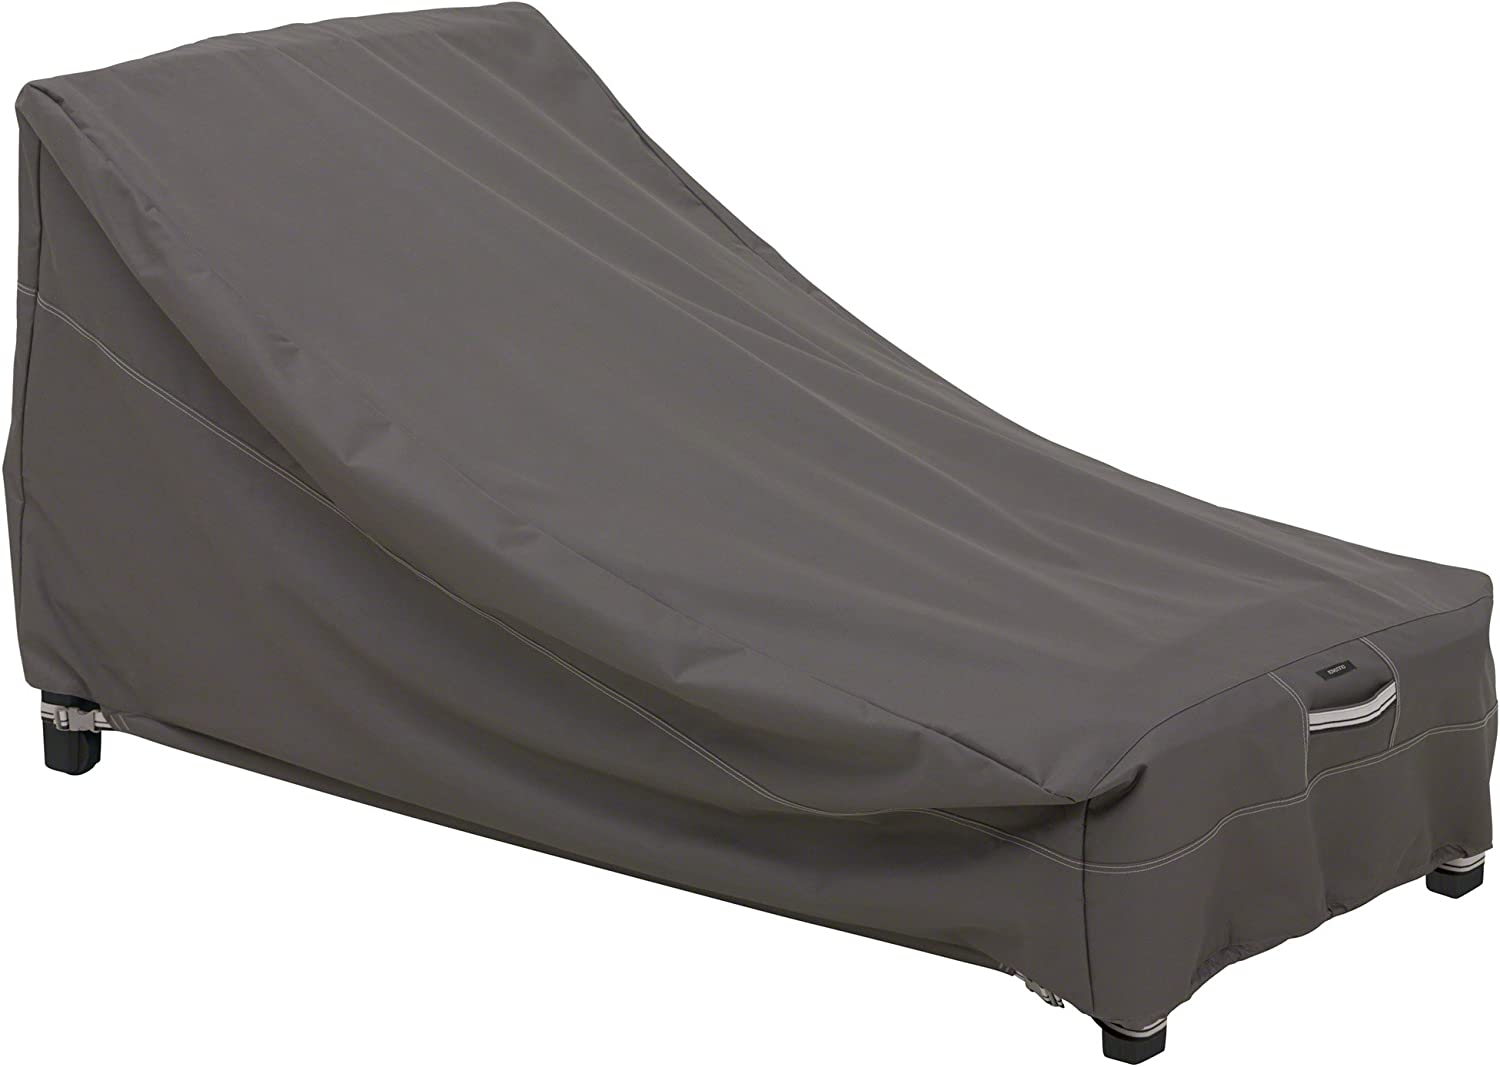 Classic Accessories 55-163-045101-EC Ravenna Water-Resistant 78 Inch Patio Day Chaise Lounge Cover, Taupe, Large Day Chaise Lounge : Patio Chaise Lounge Covers : Garden & Outdoor